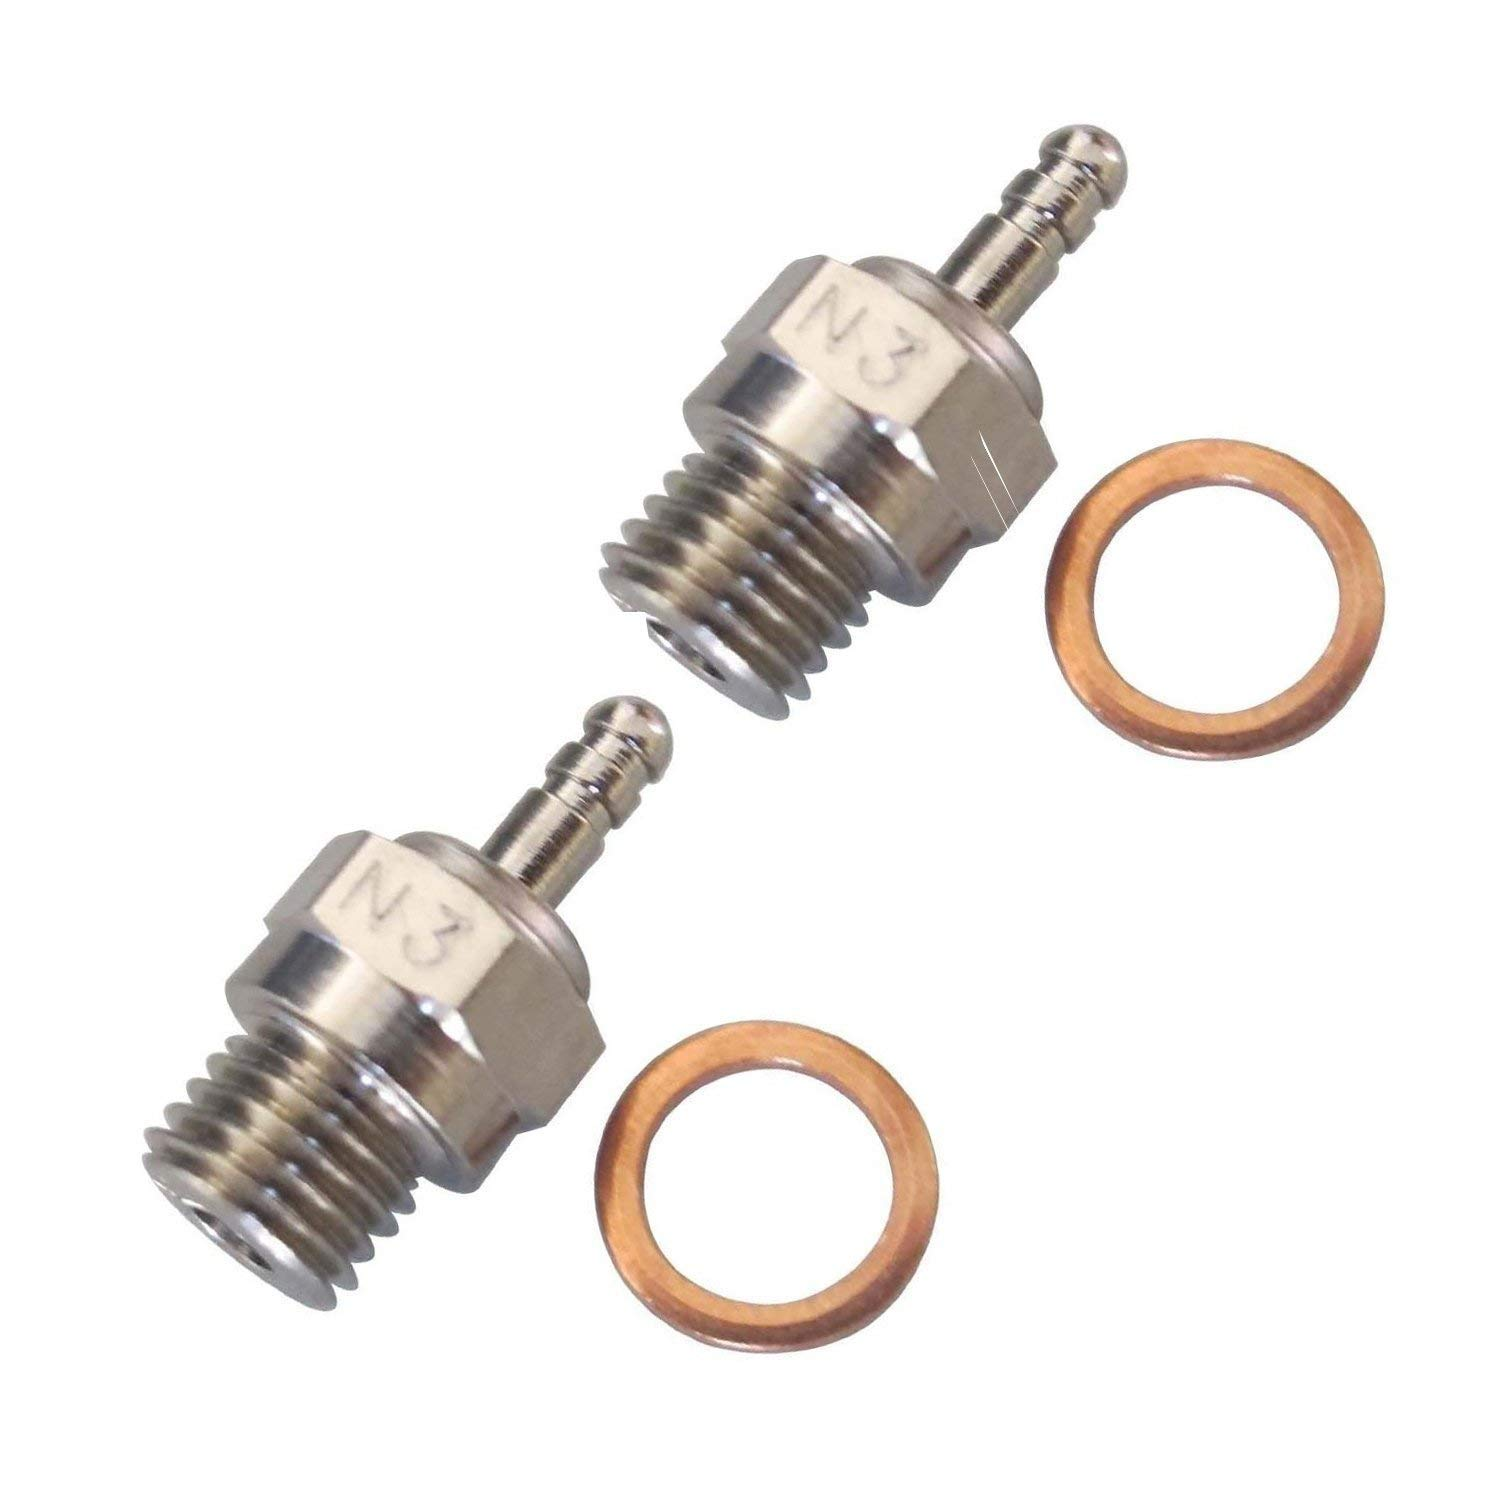 2 PCS ShareGoo Spark Glow Plug No.3 N3 Hot 70117 for RC Nitro Engines Car Truck Traxxas